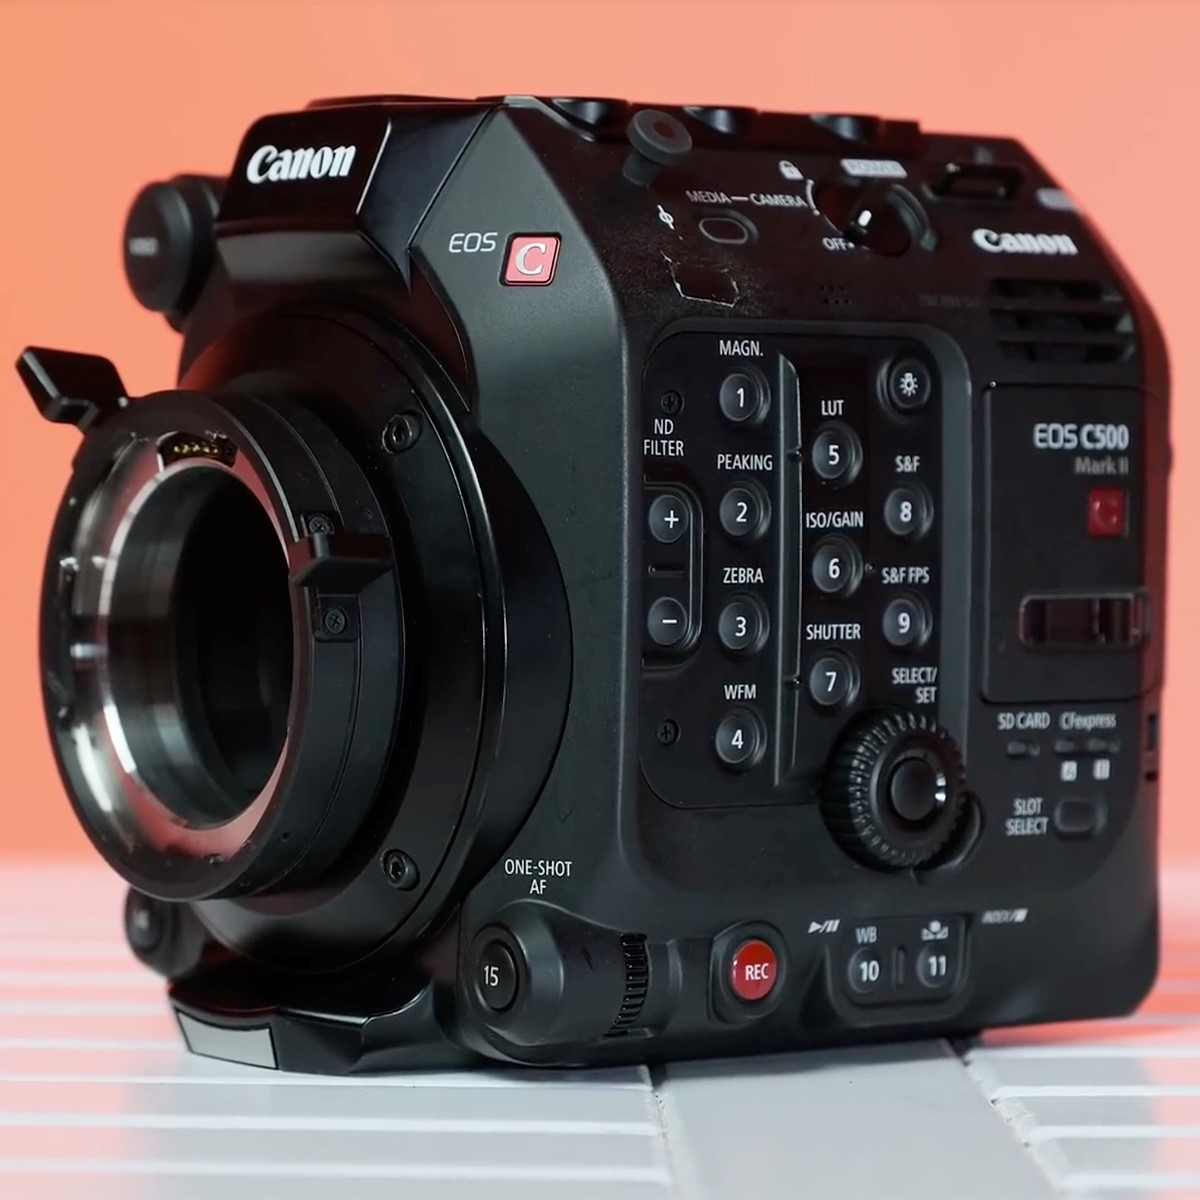 Video: Cinema5D goes hands-on with the Canon EOS C500 Mark